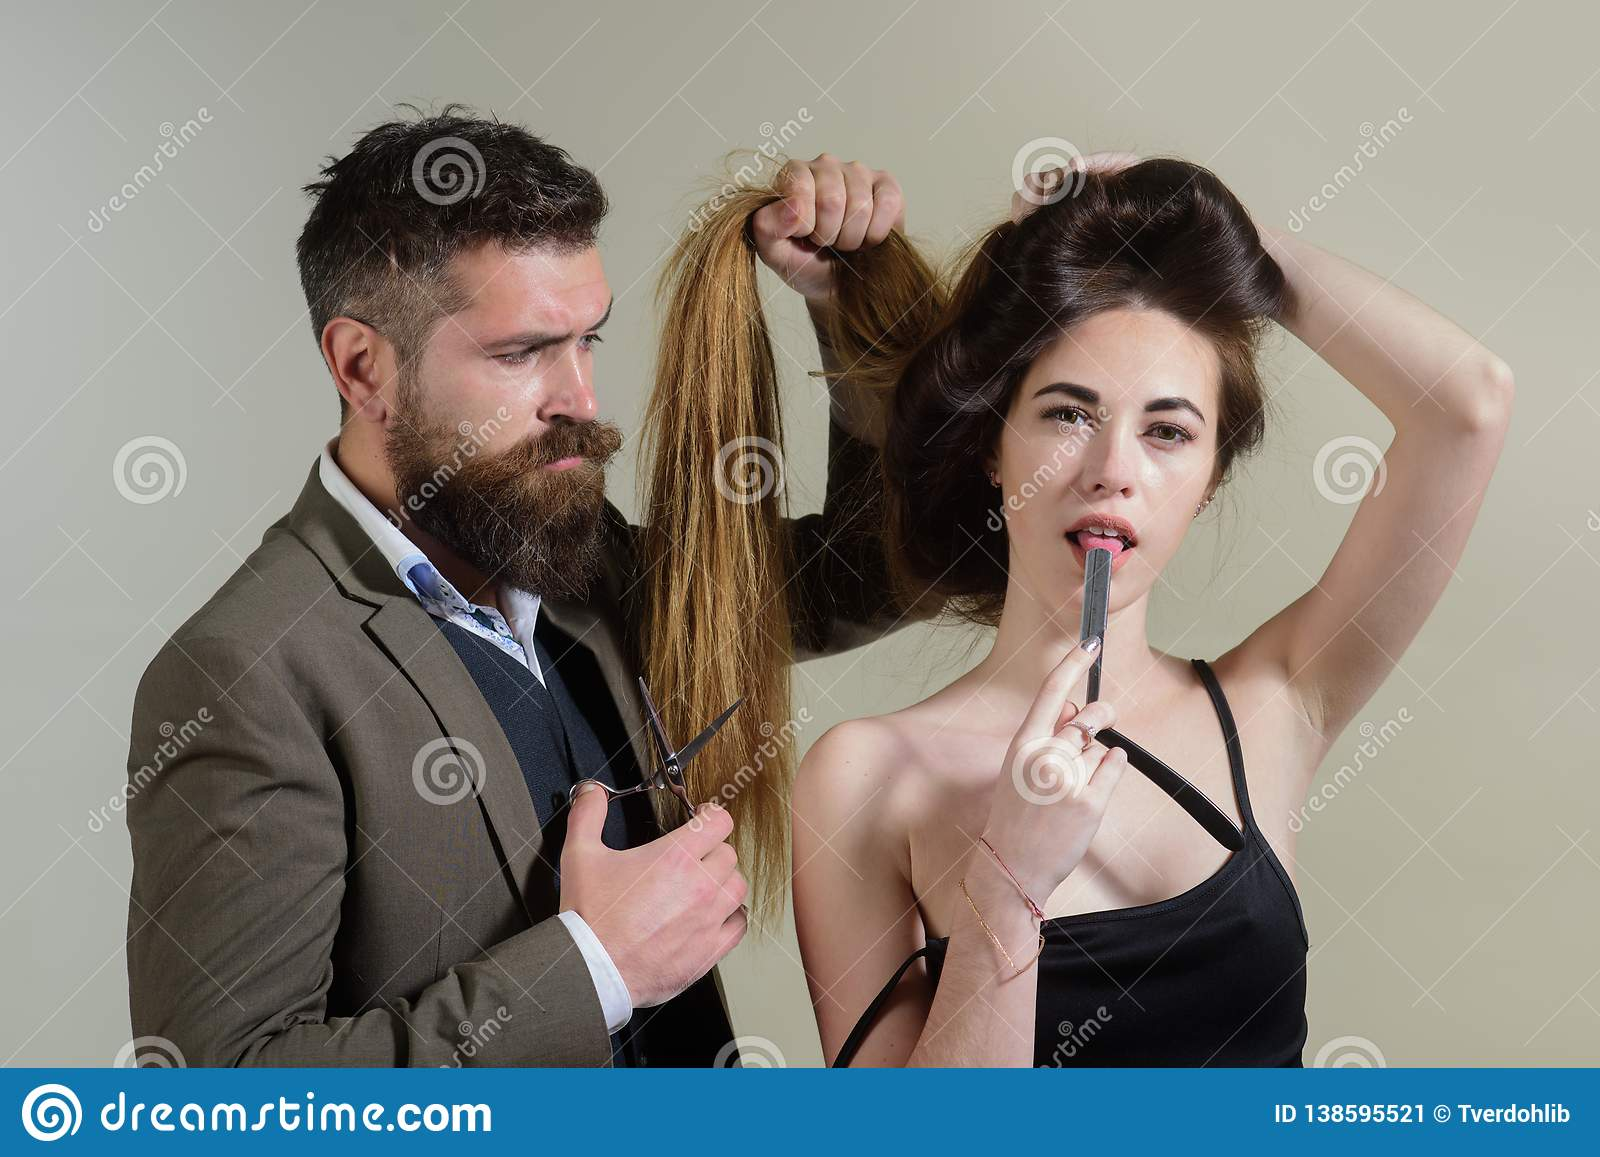 Master hairdresser does hairstyle and style with scissors and comb. Hairdressers work for a woman at the hair salon